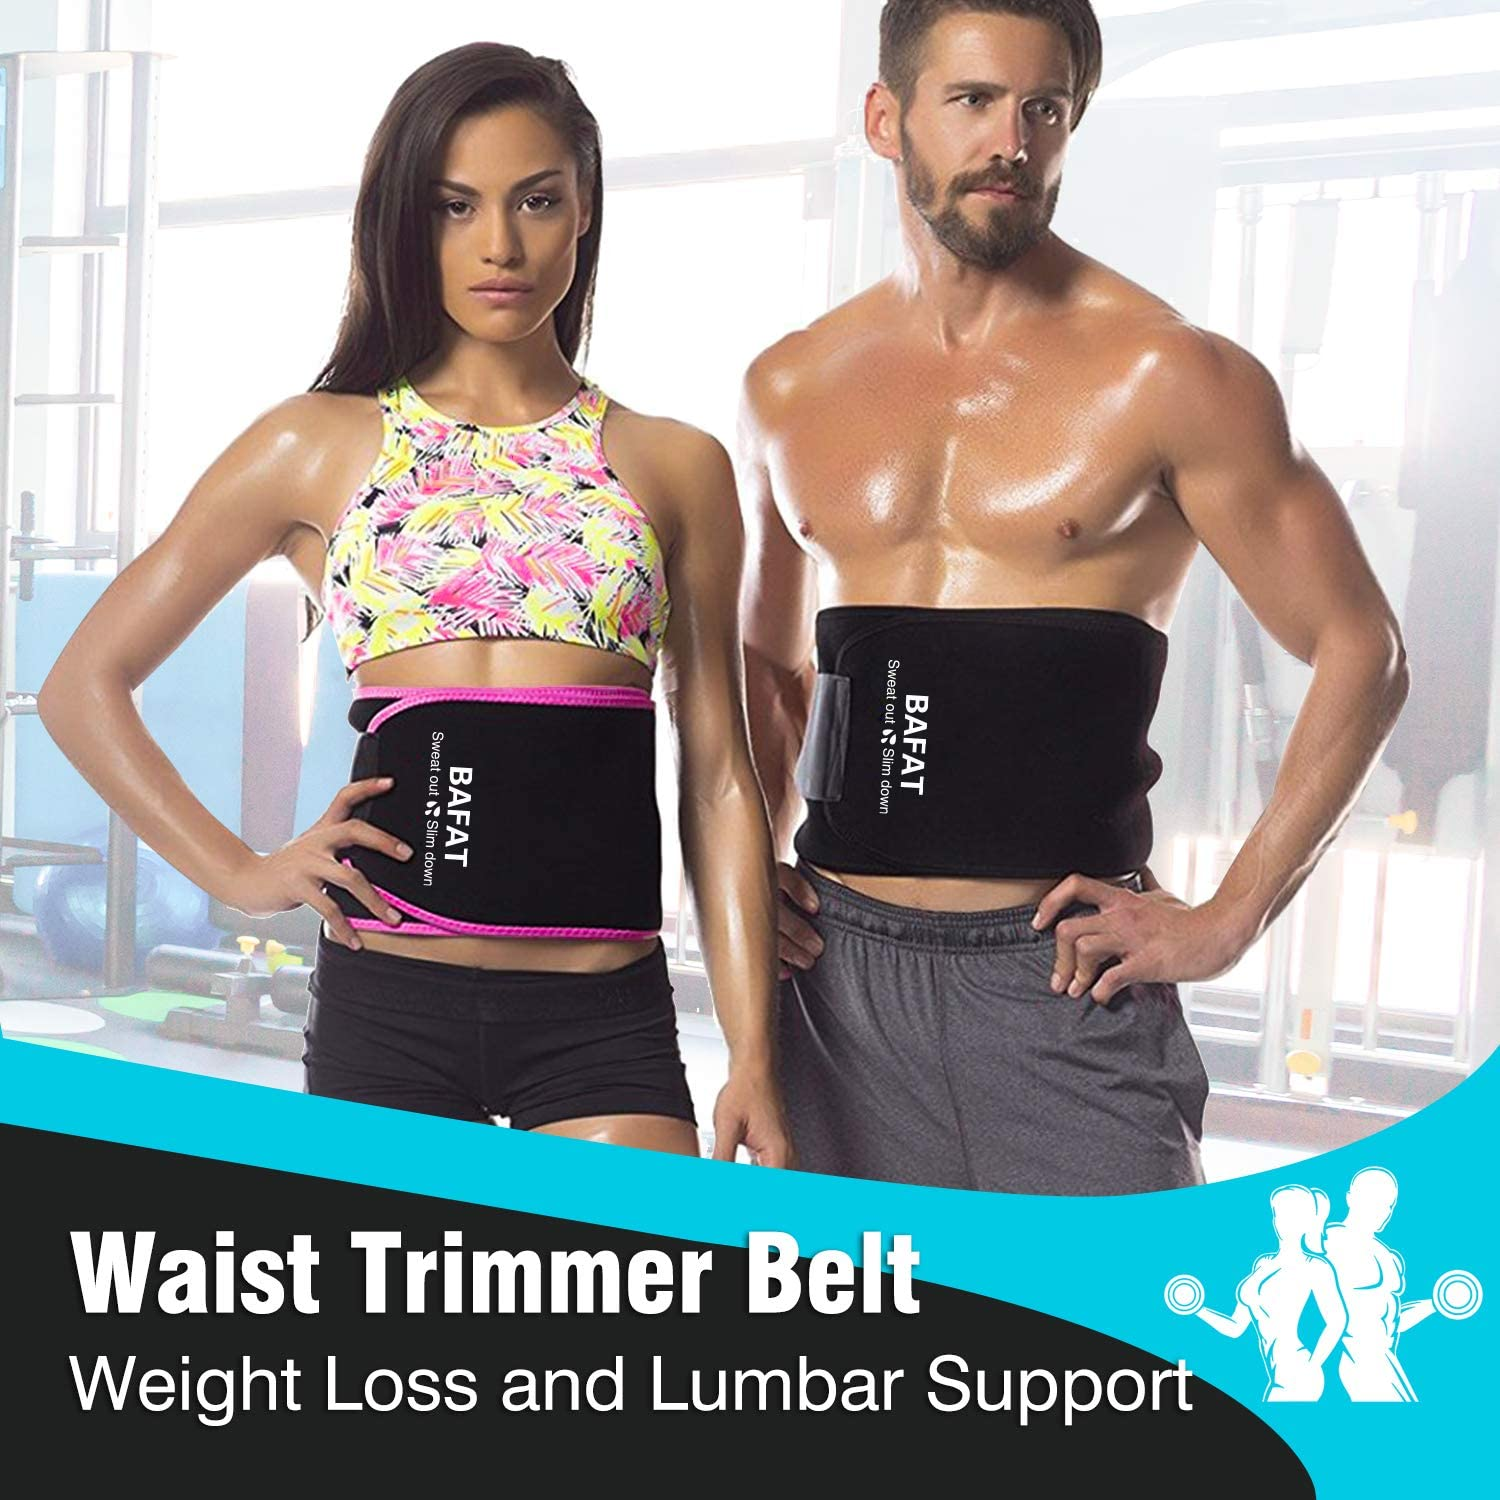 MIZATTO Waist Trimmer Belt Workout Sweat Tummy Wrap for Weight Loss and Lumbar Support